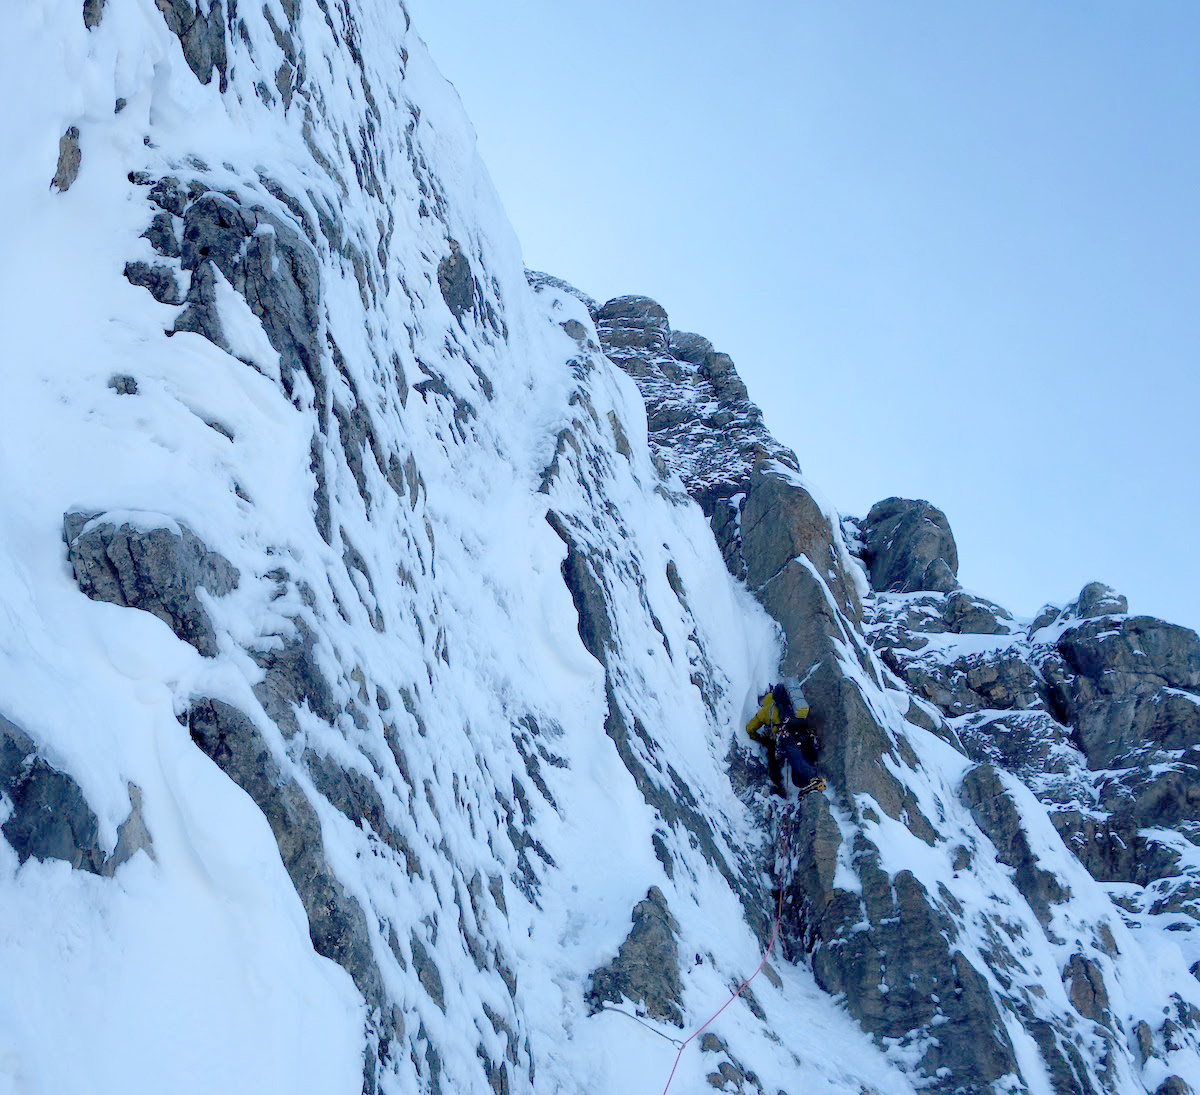 Hawthorn excavating a snow-choked dihedral near the Emperor Ridge. [Photo] Ethan Berman